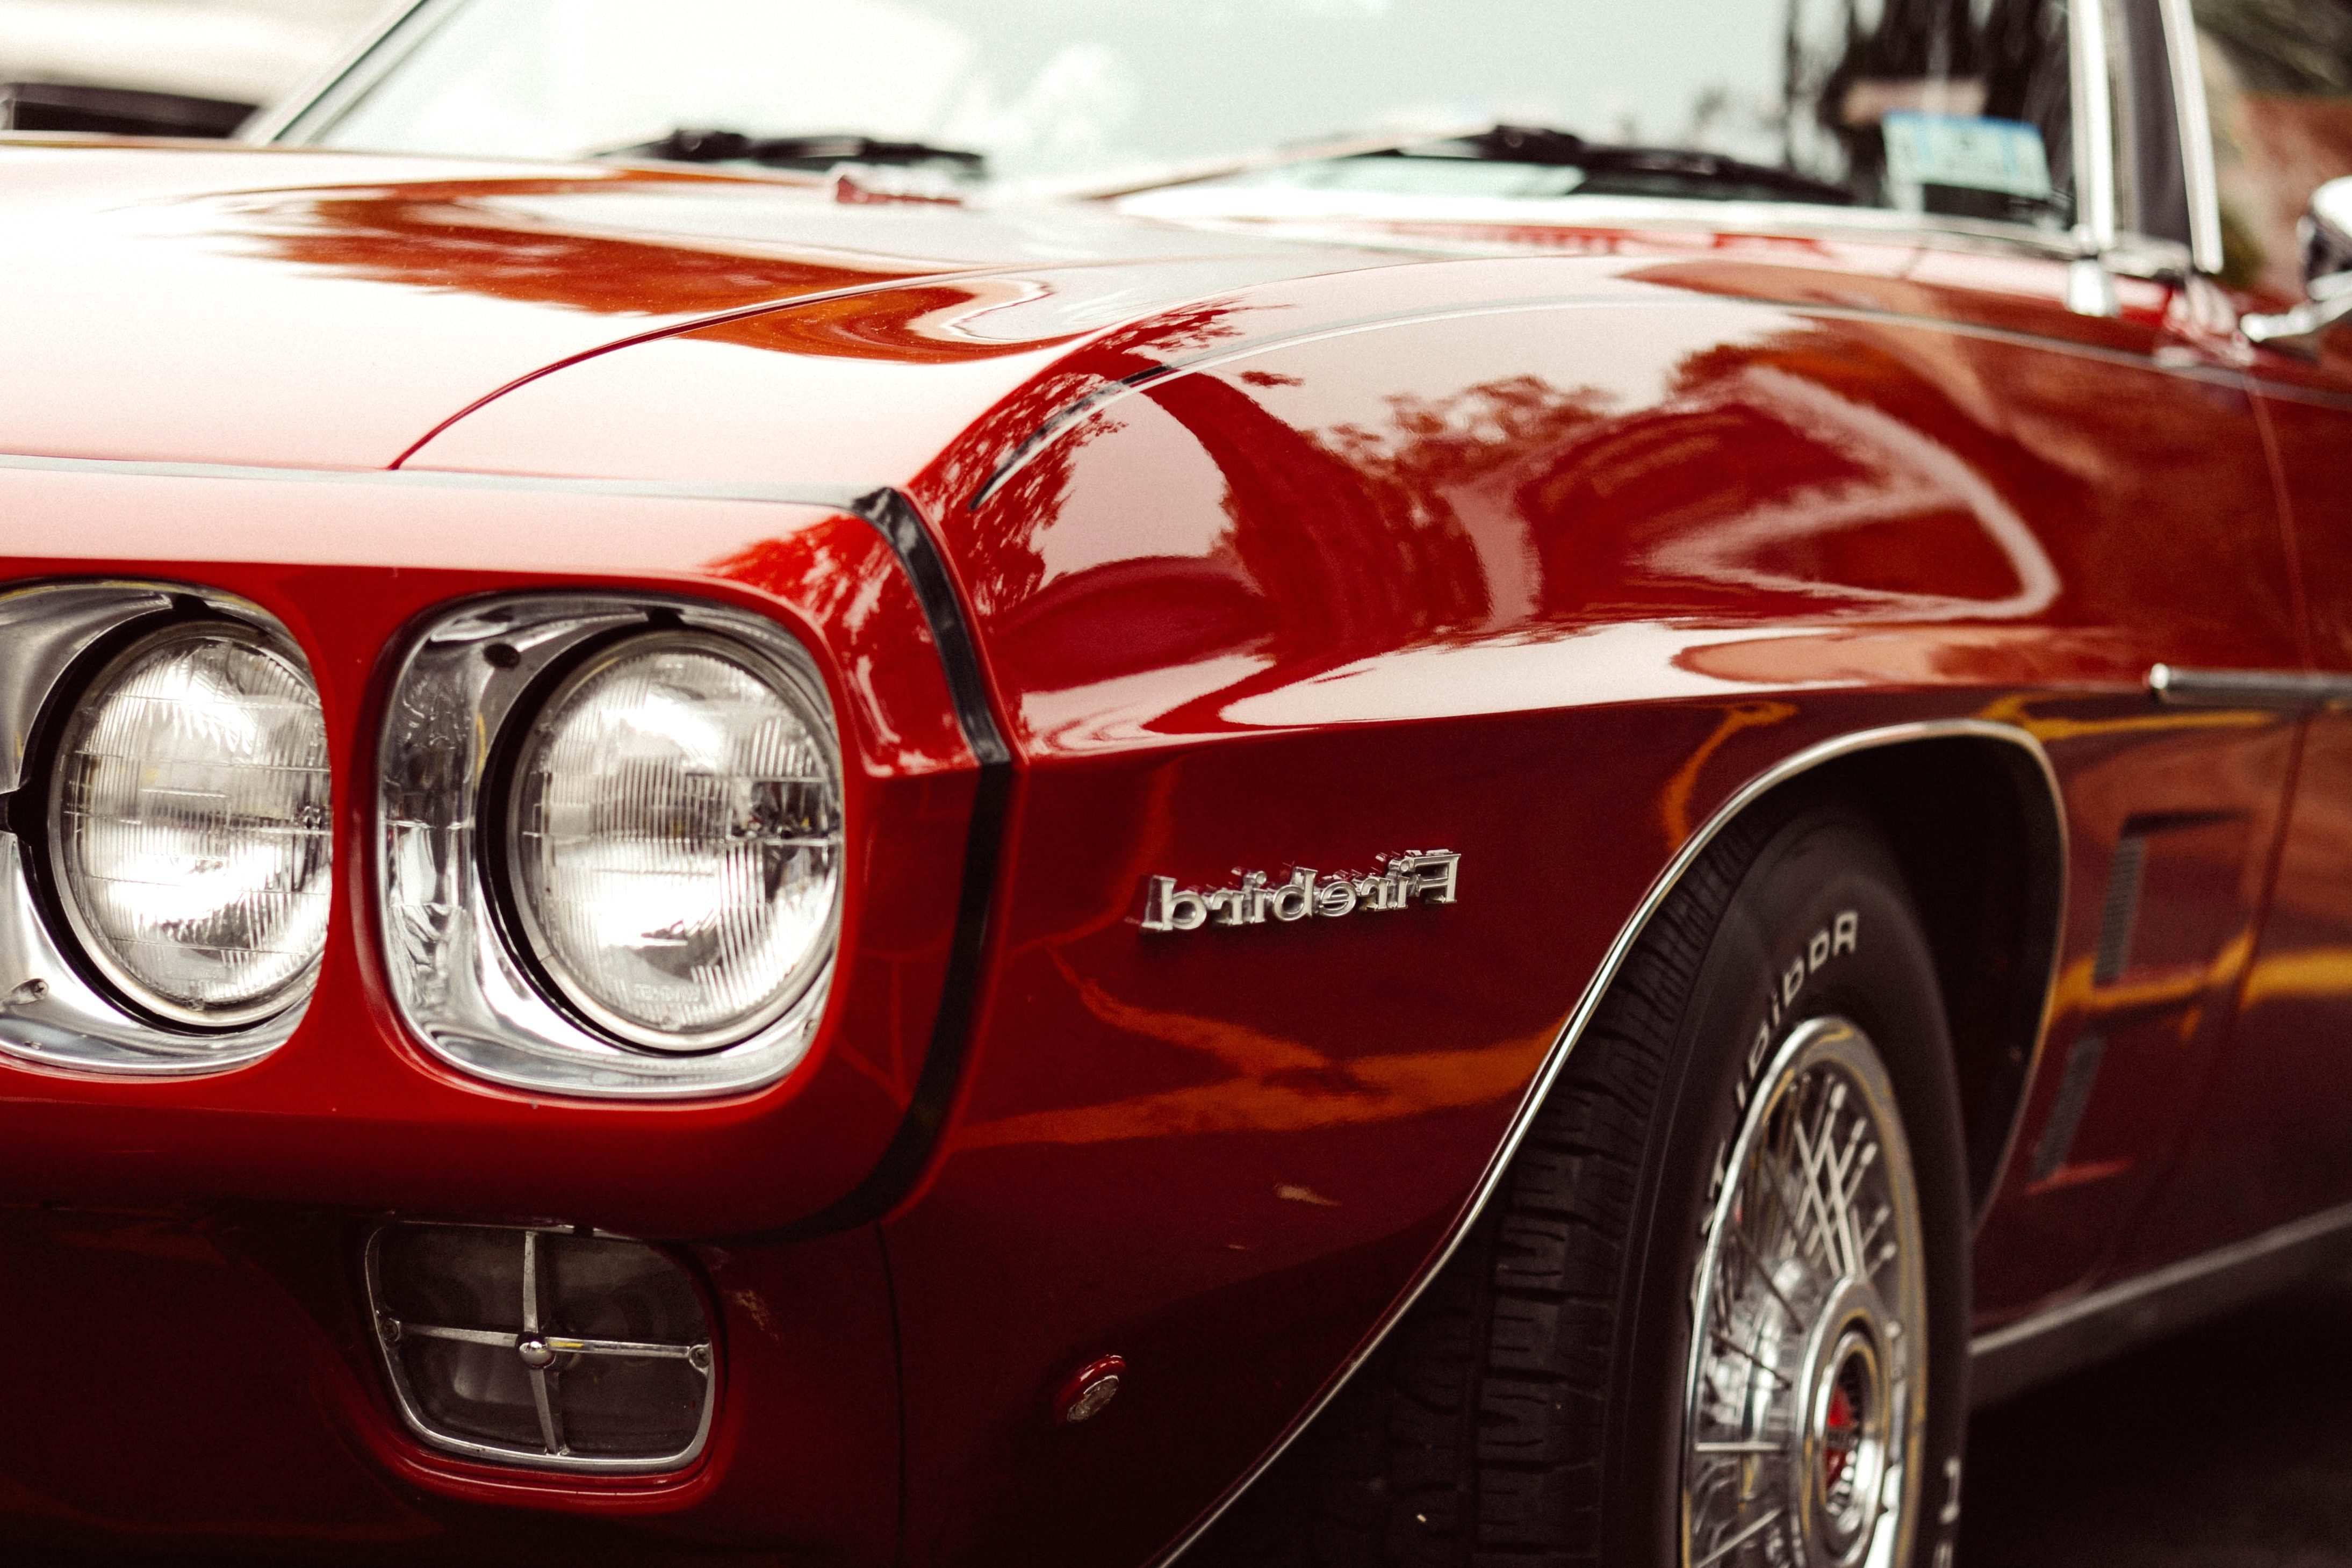 Free picture: classic car, hood, oldtimer, red, car, vehicle ...